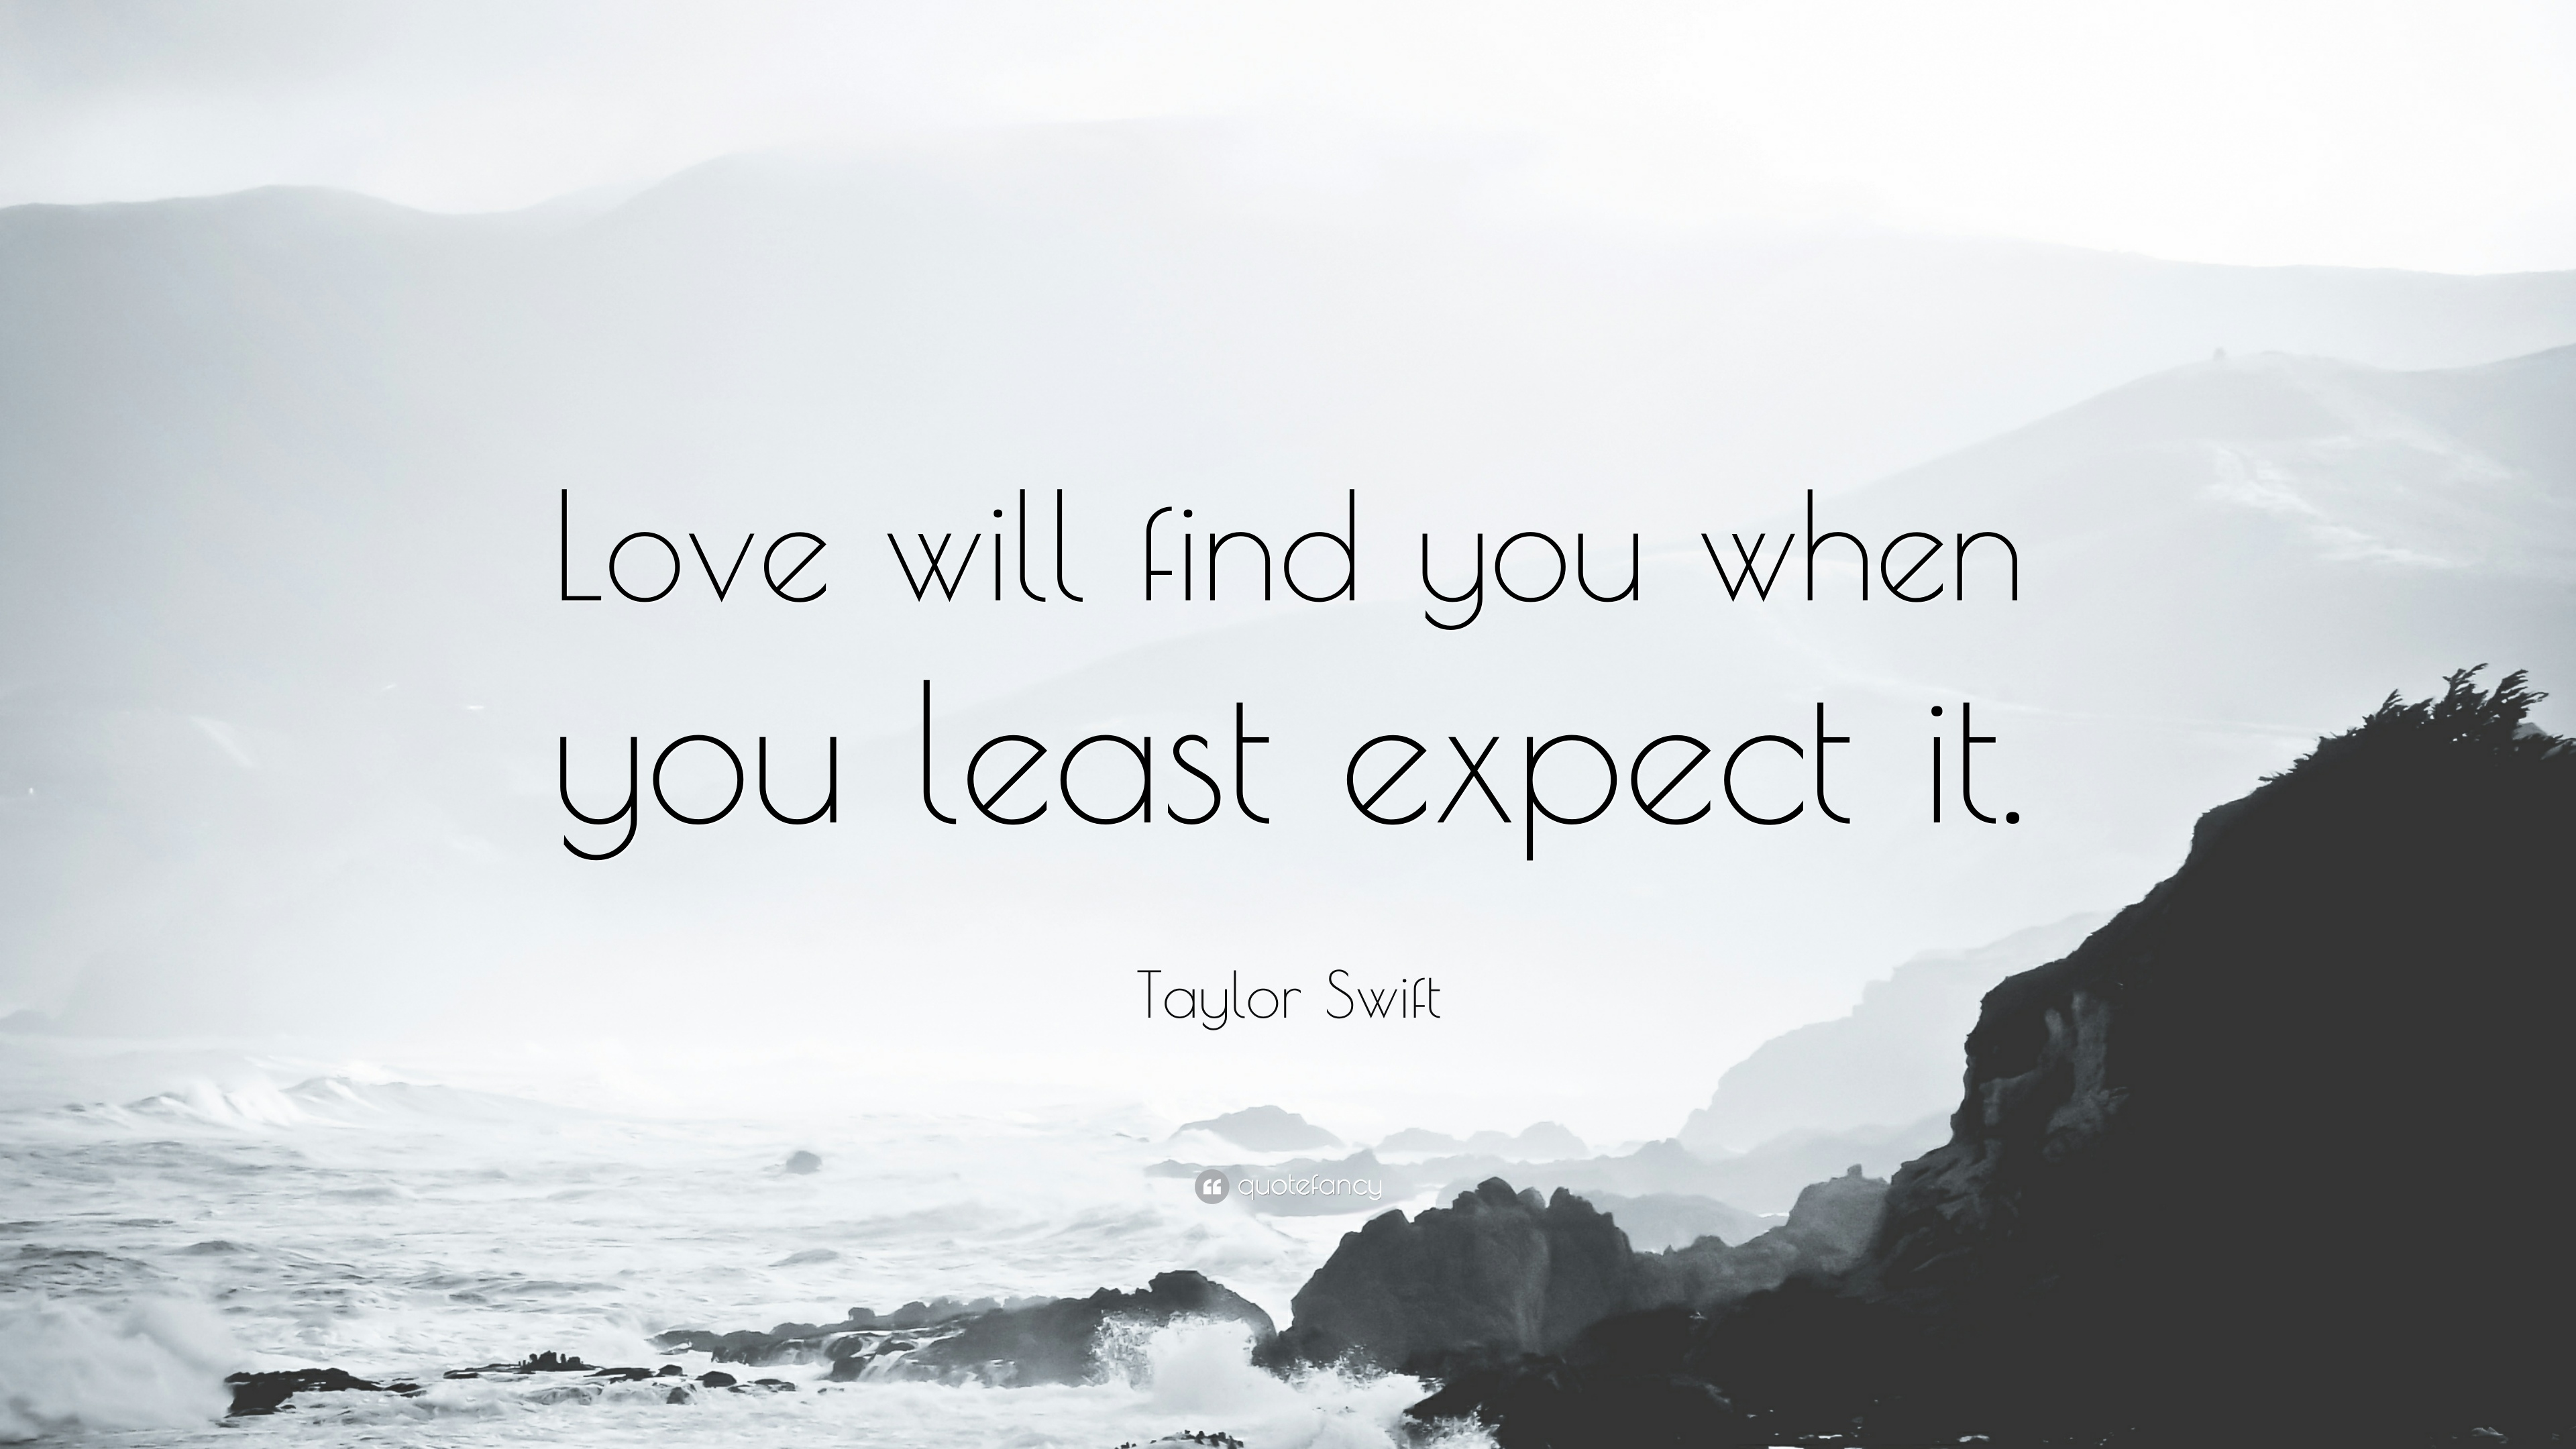 Taylor Swift Quote Love Will Find You When You Least Expect It